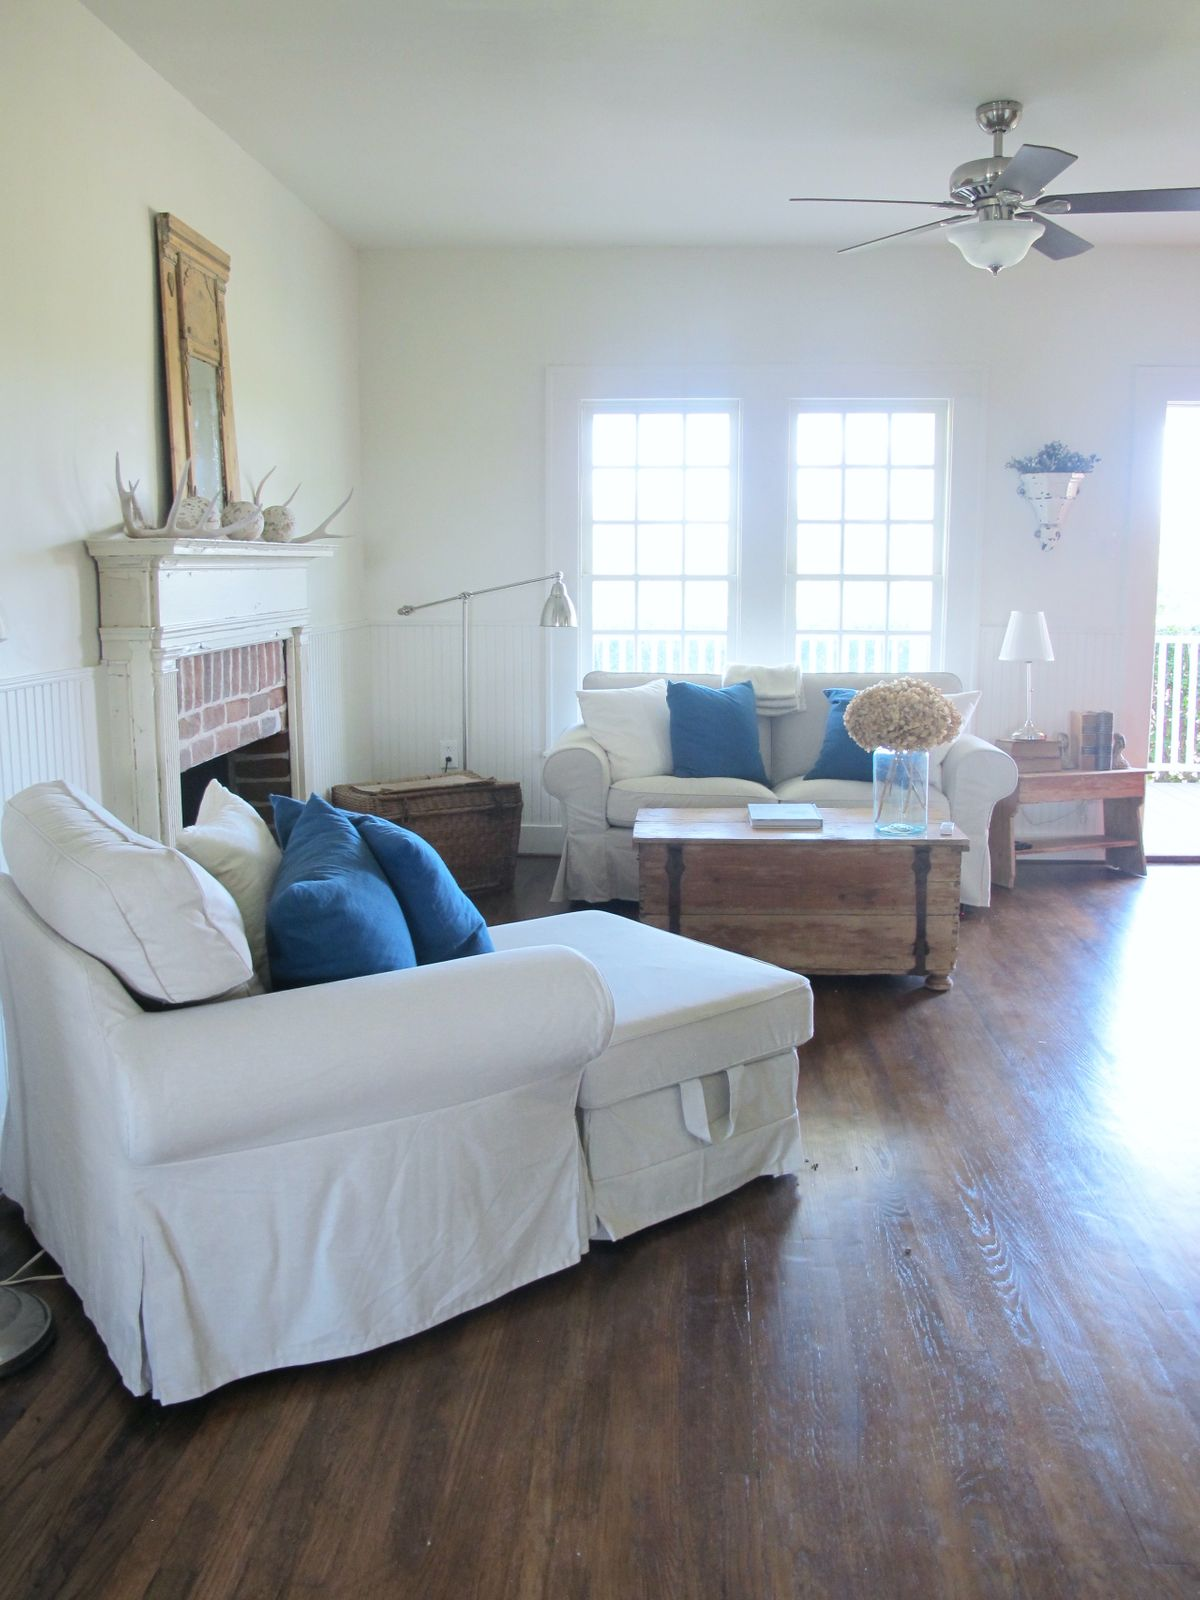 Soaring Eagle Bungalow Traditional Home Photo Video Shoot Location Dallas